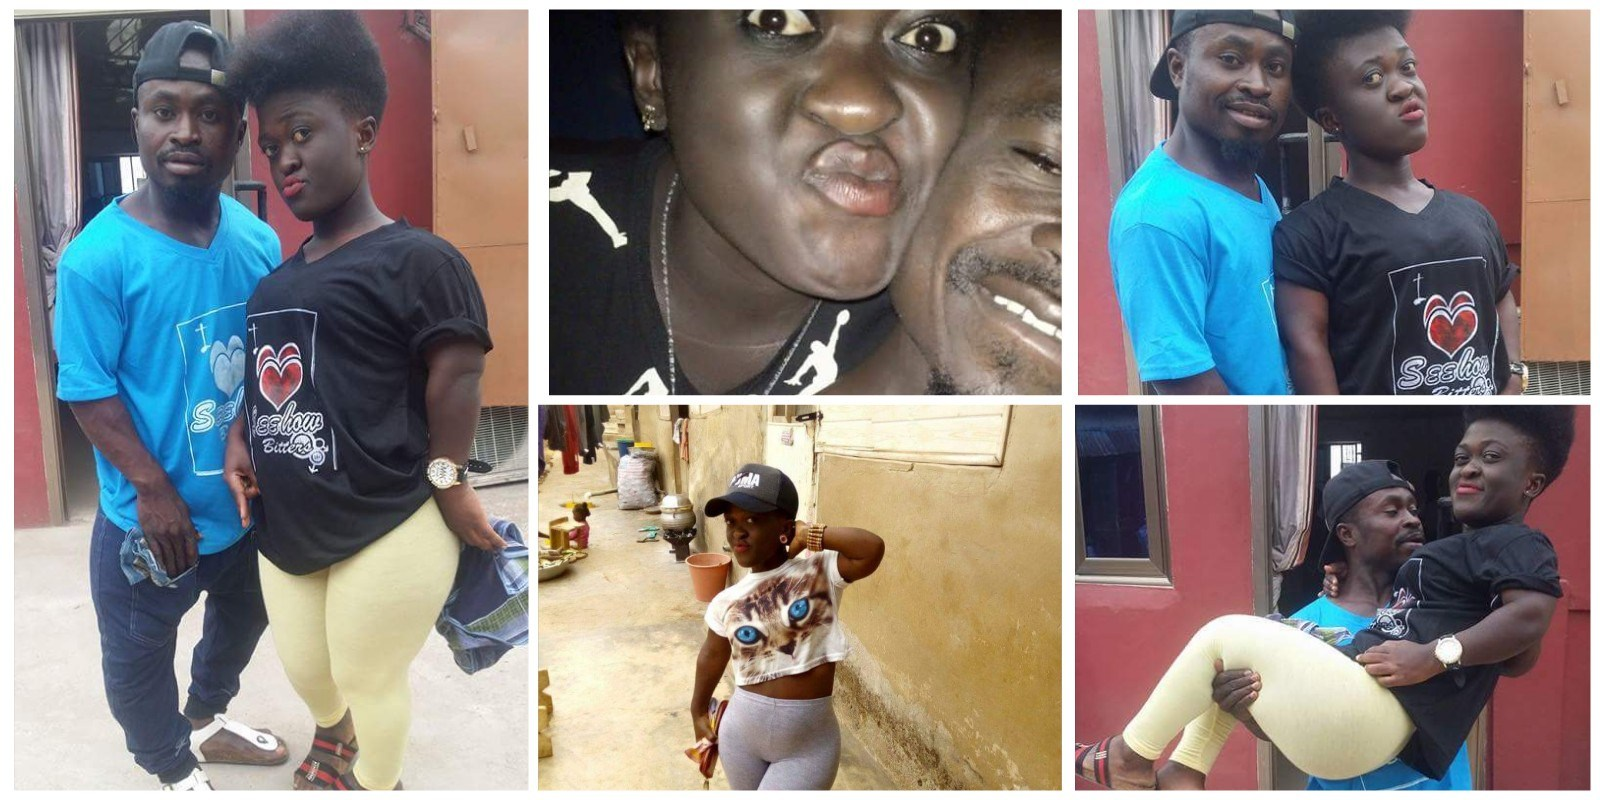 """Bae Came To Visit Me At Work"" — Ghanaian Lady Shares Romantic Photos With Her Bae"